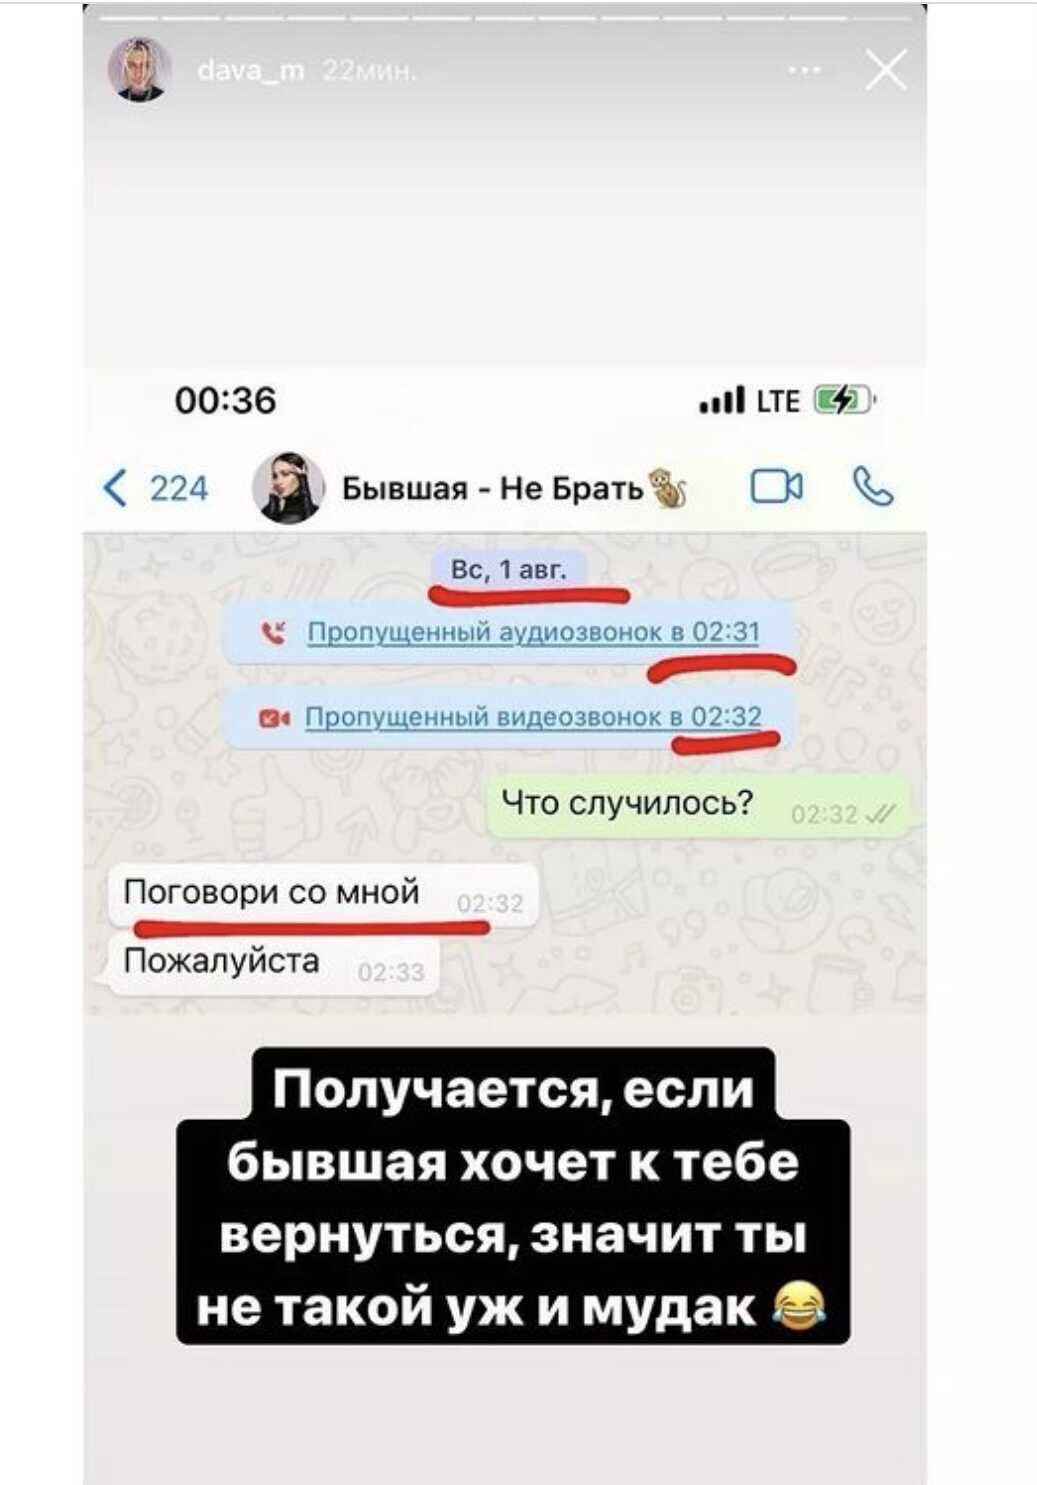 Humiliated by Olga Buzova, David Manukyan, in revenge, began to publish their personal correspondence, hinting that the singer herself is trying to return him